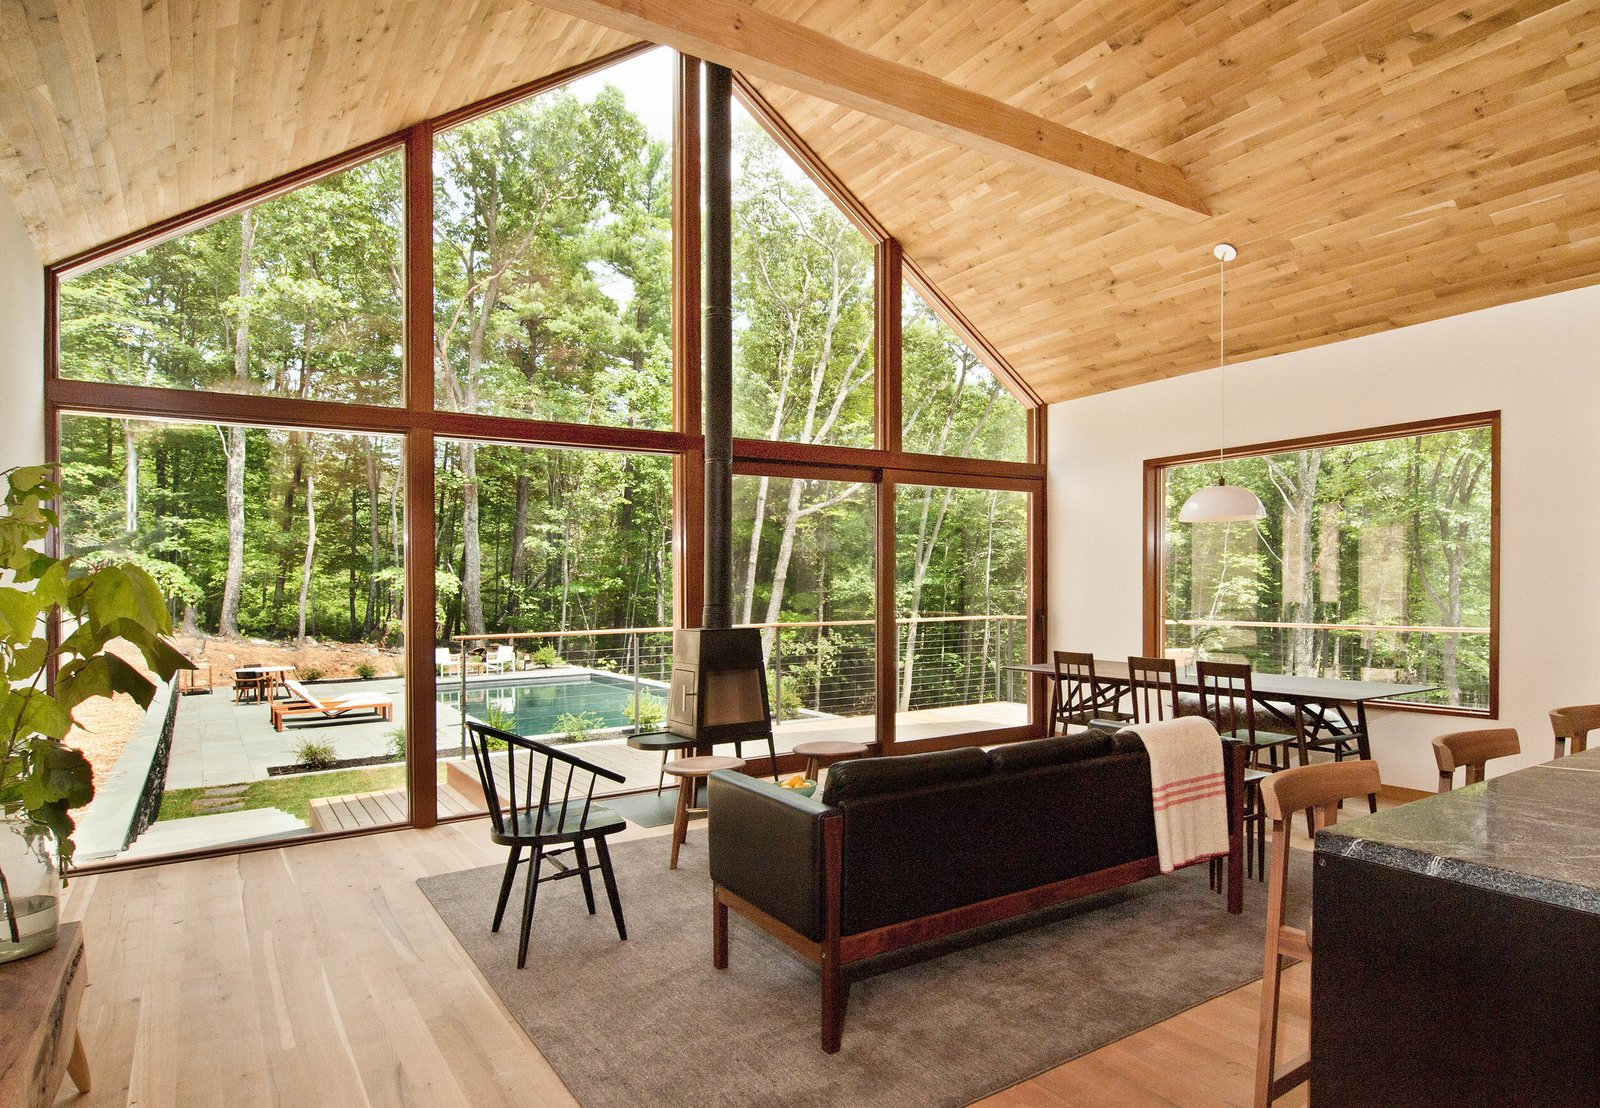 Articles about enclave modern cottages new yorks hudson valley on Dwell.com